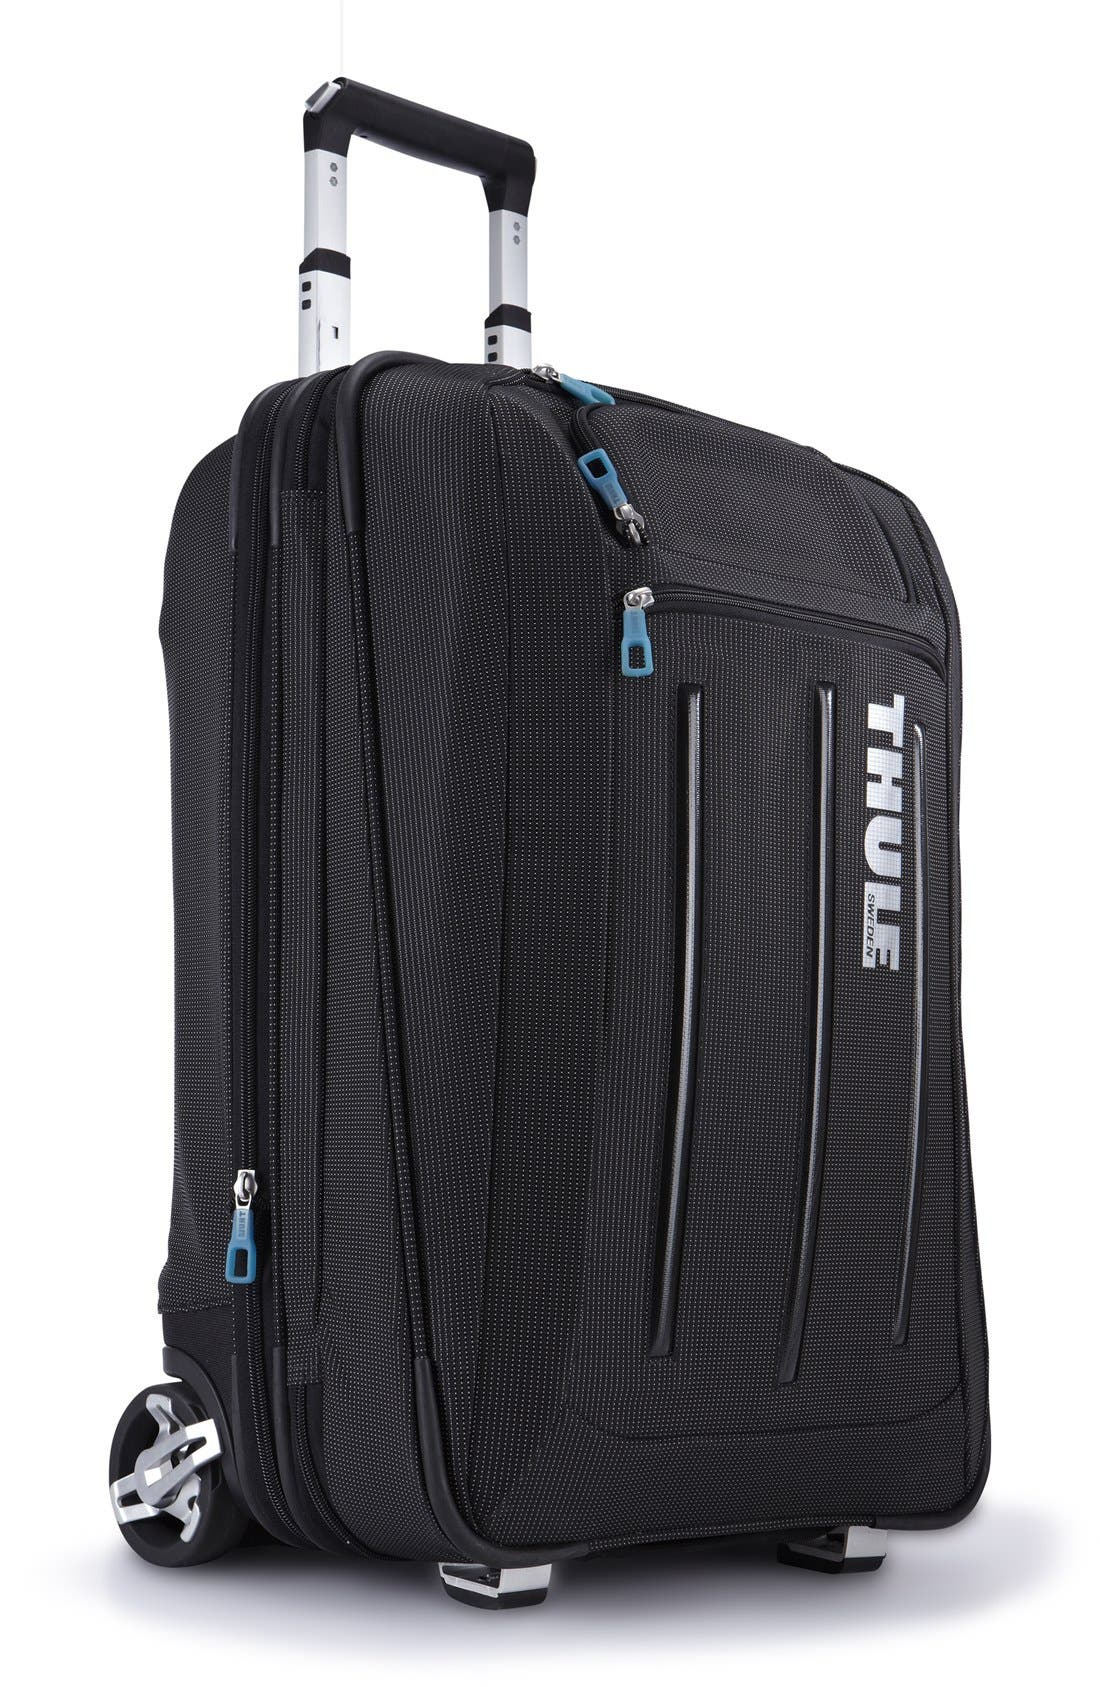 Thule Crossover Rolling 22-Inch Carry-On with Garment Bag